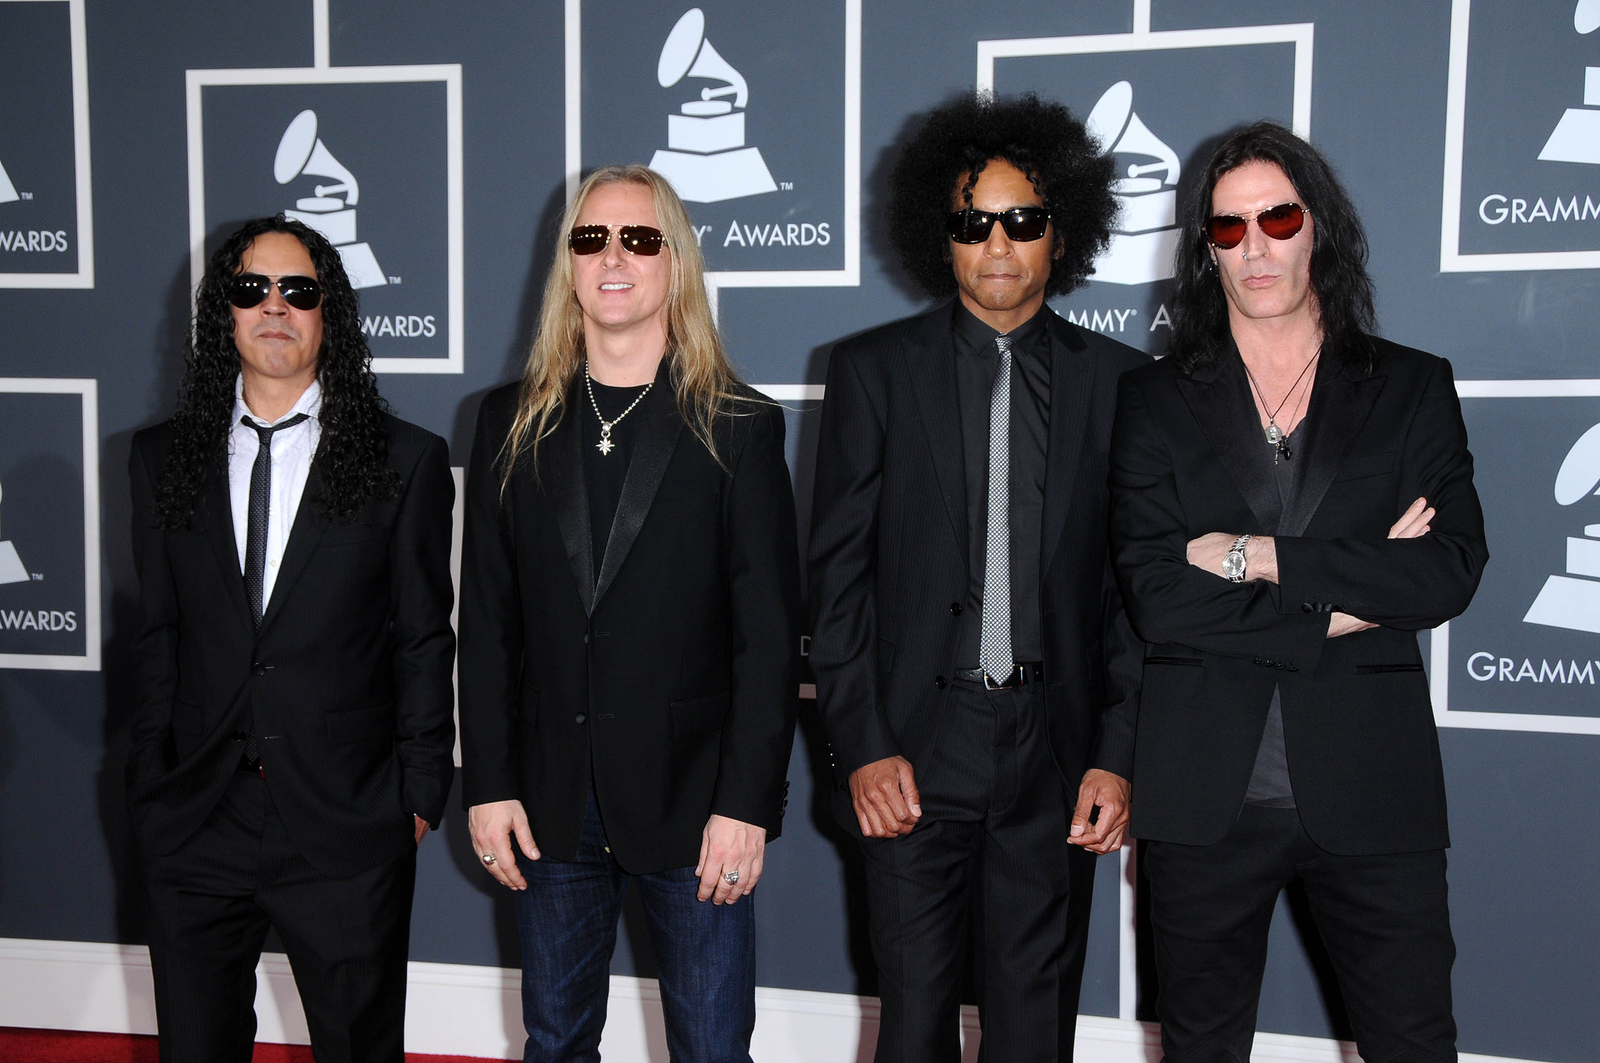 Alice In Chains at the 52nd Annual Grammy Awards